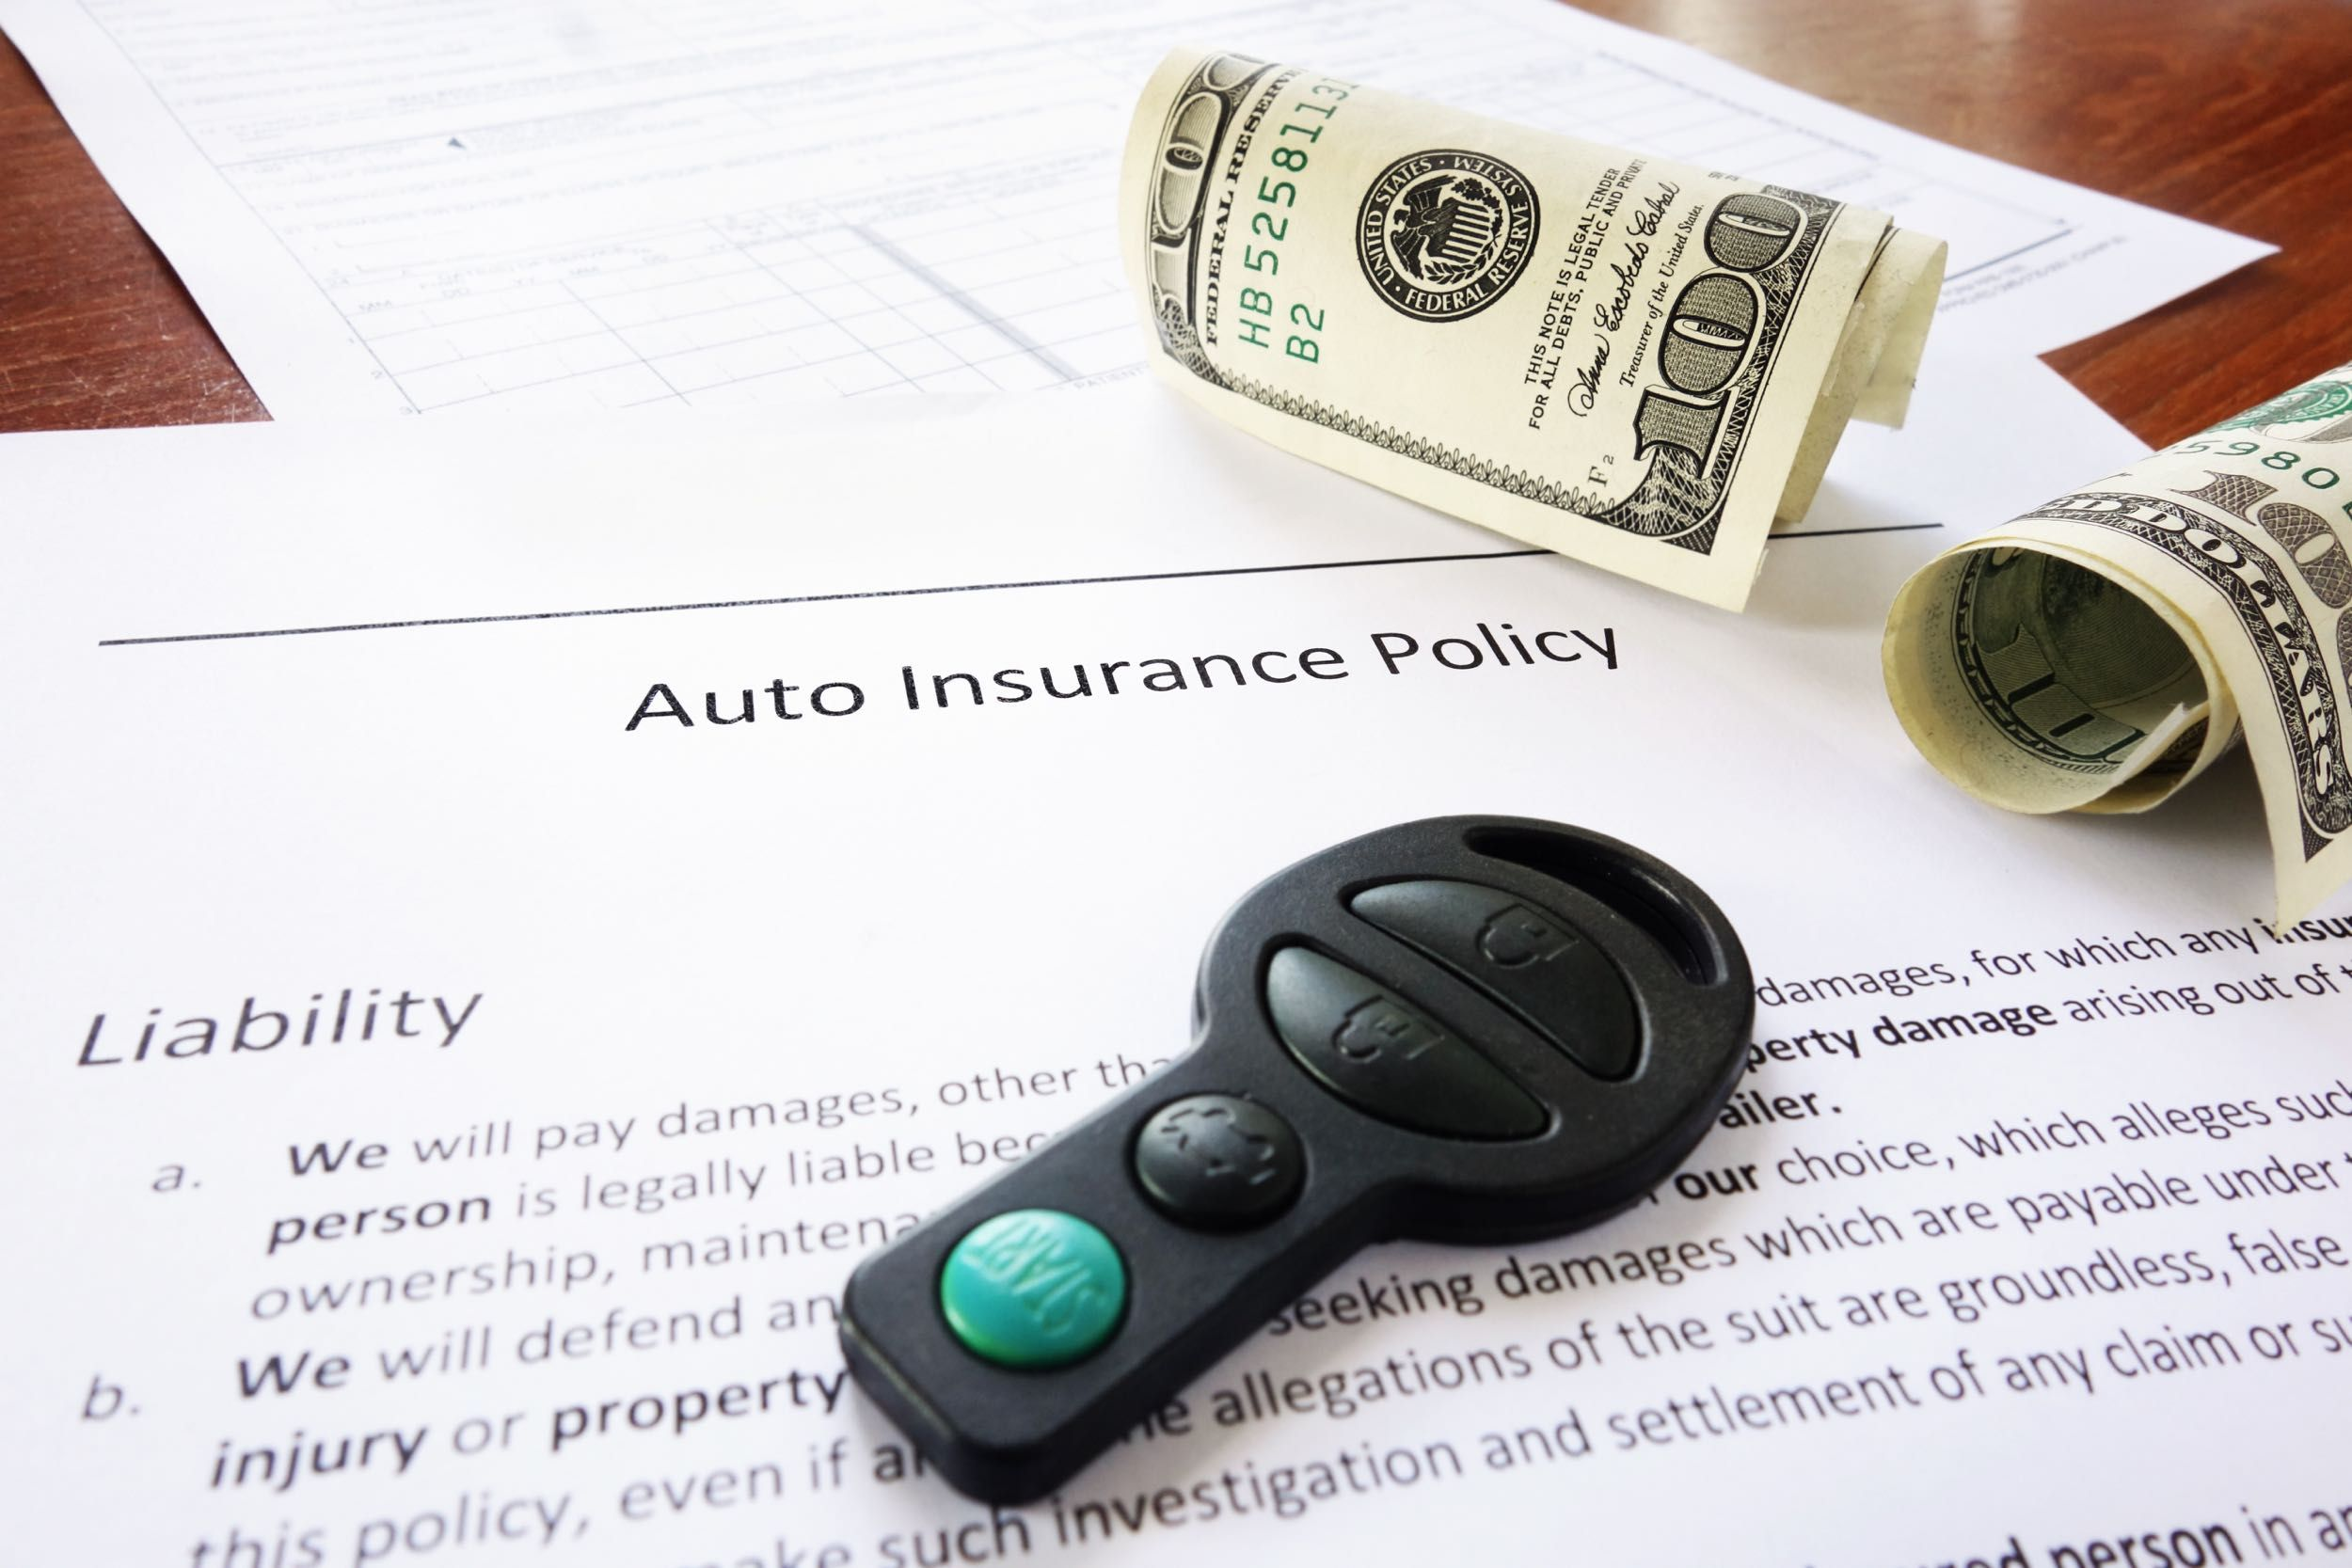 Costco Auto Insurance Quote Don't Miss These 10 Perks Of Costco Or Sam's Club Membership